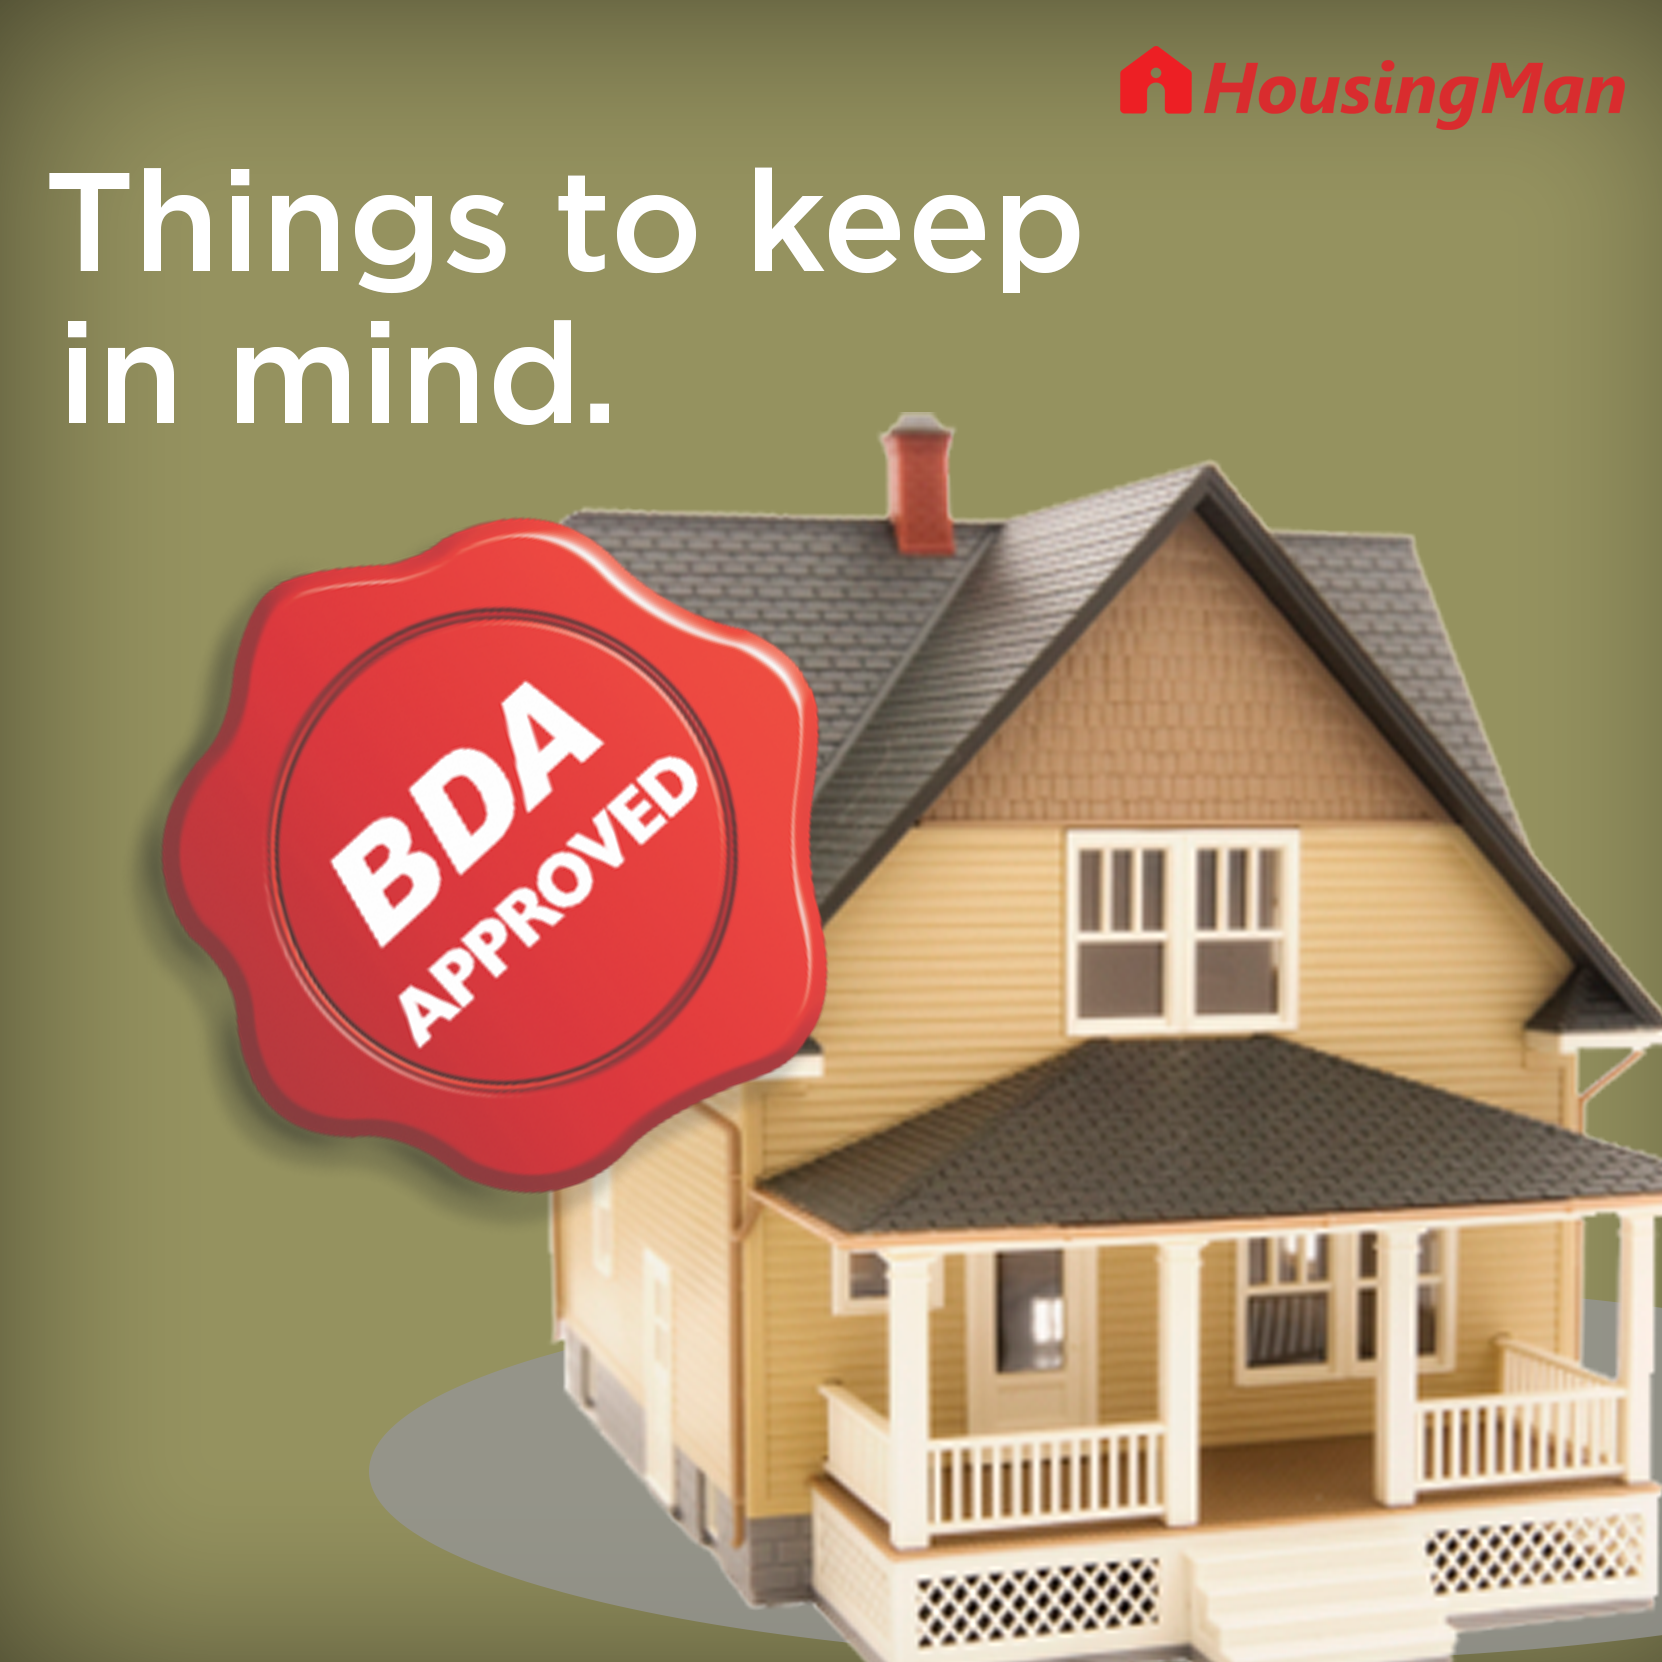 Bangalore Property approvals - Things to keep in mind